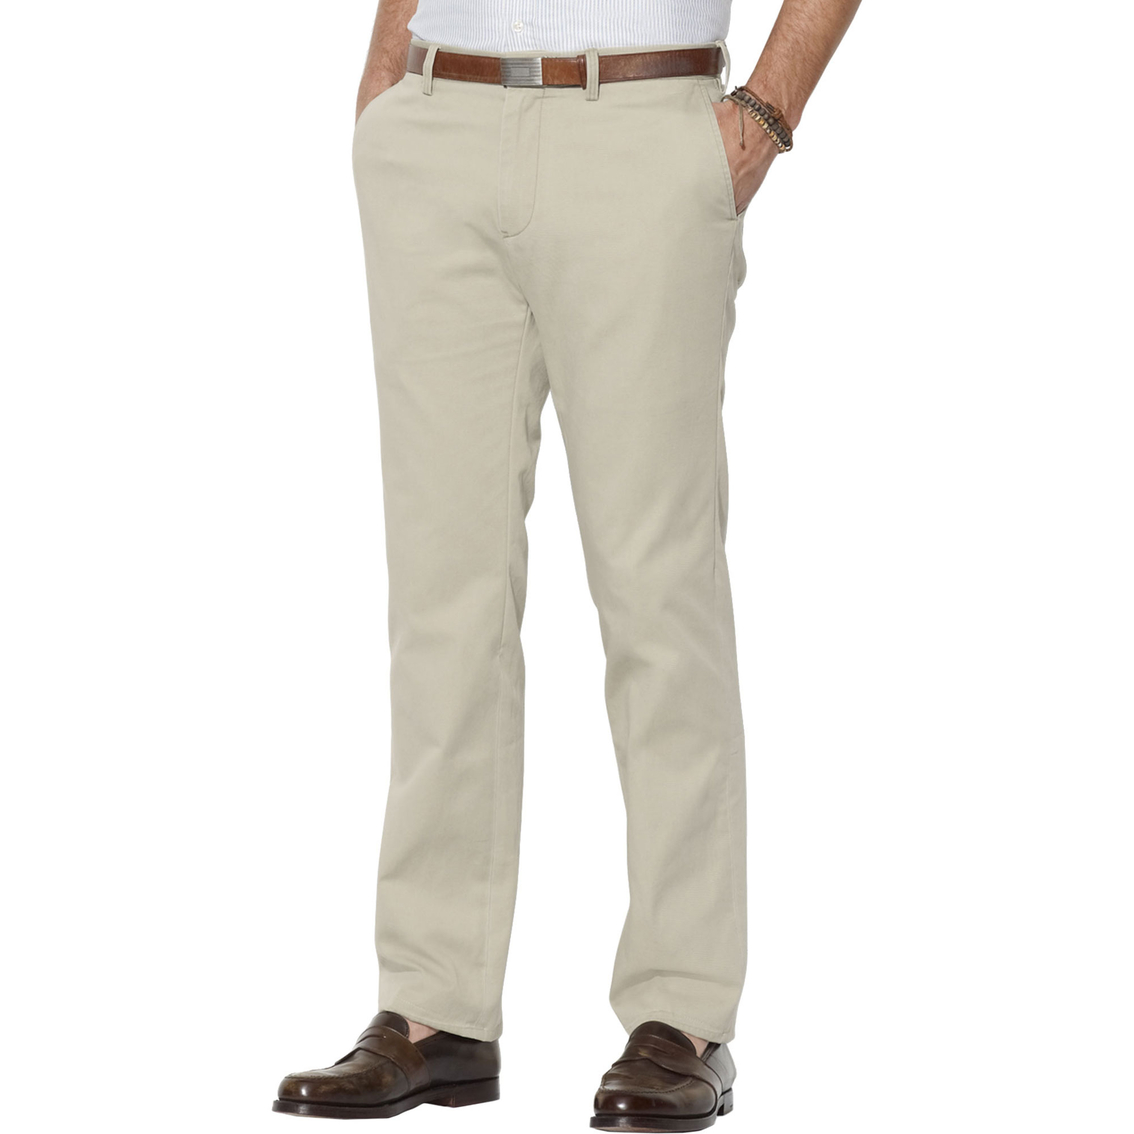 a8f7c34443ca Polo Ralph Lauren Straight Fit 5 Pocket Chino Pants